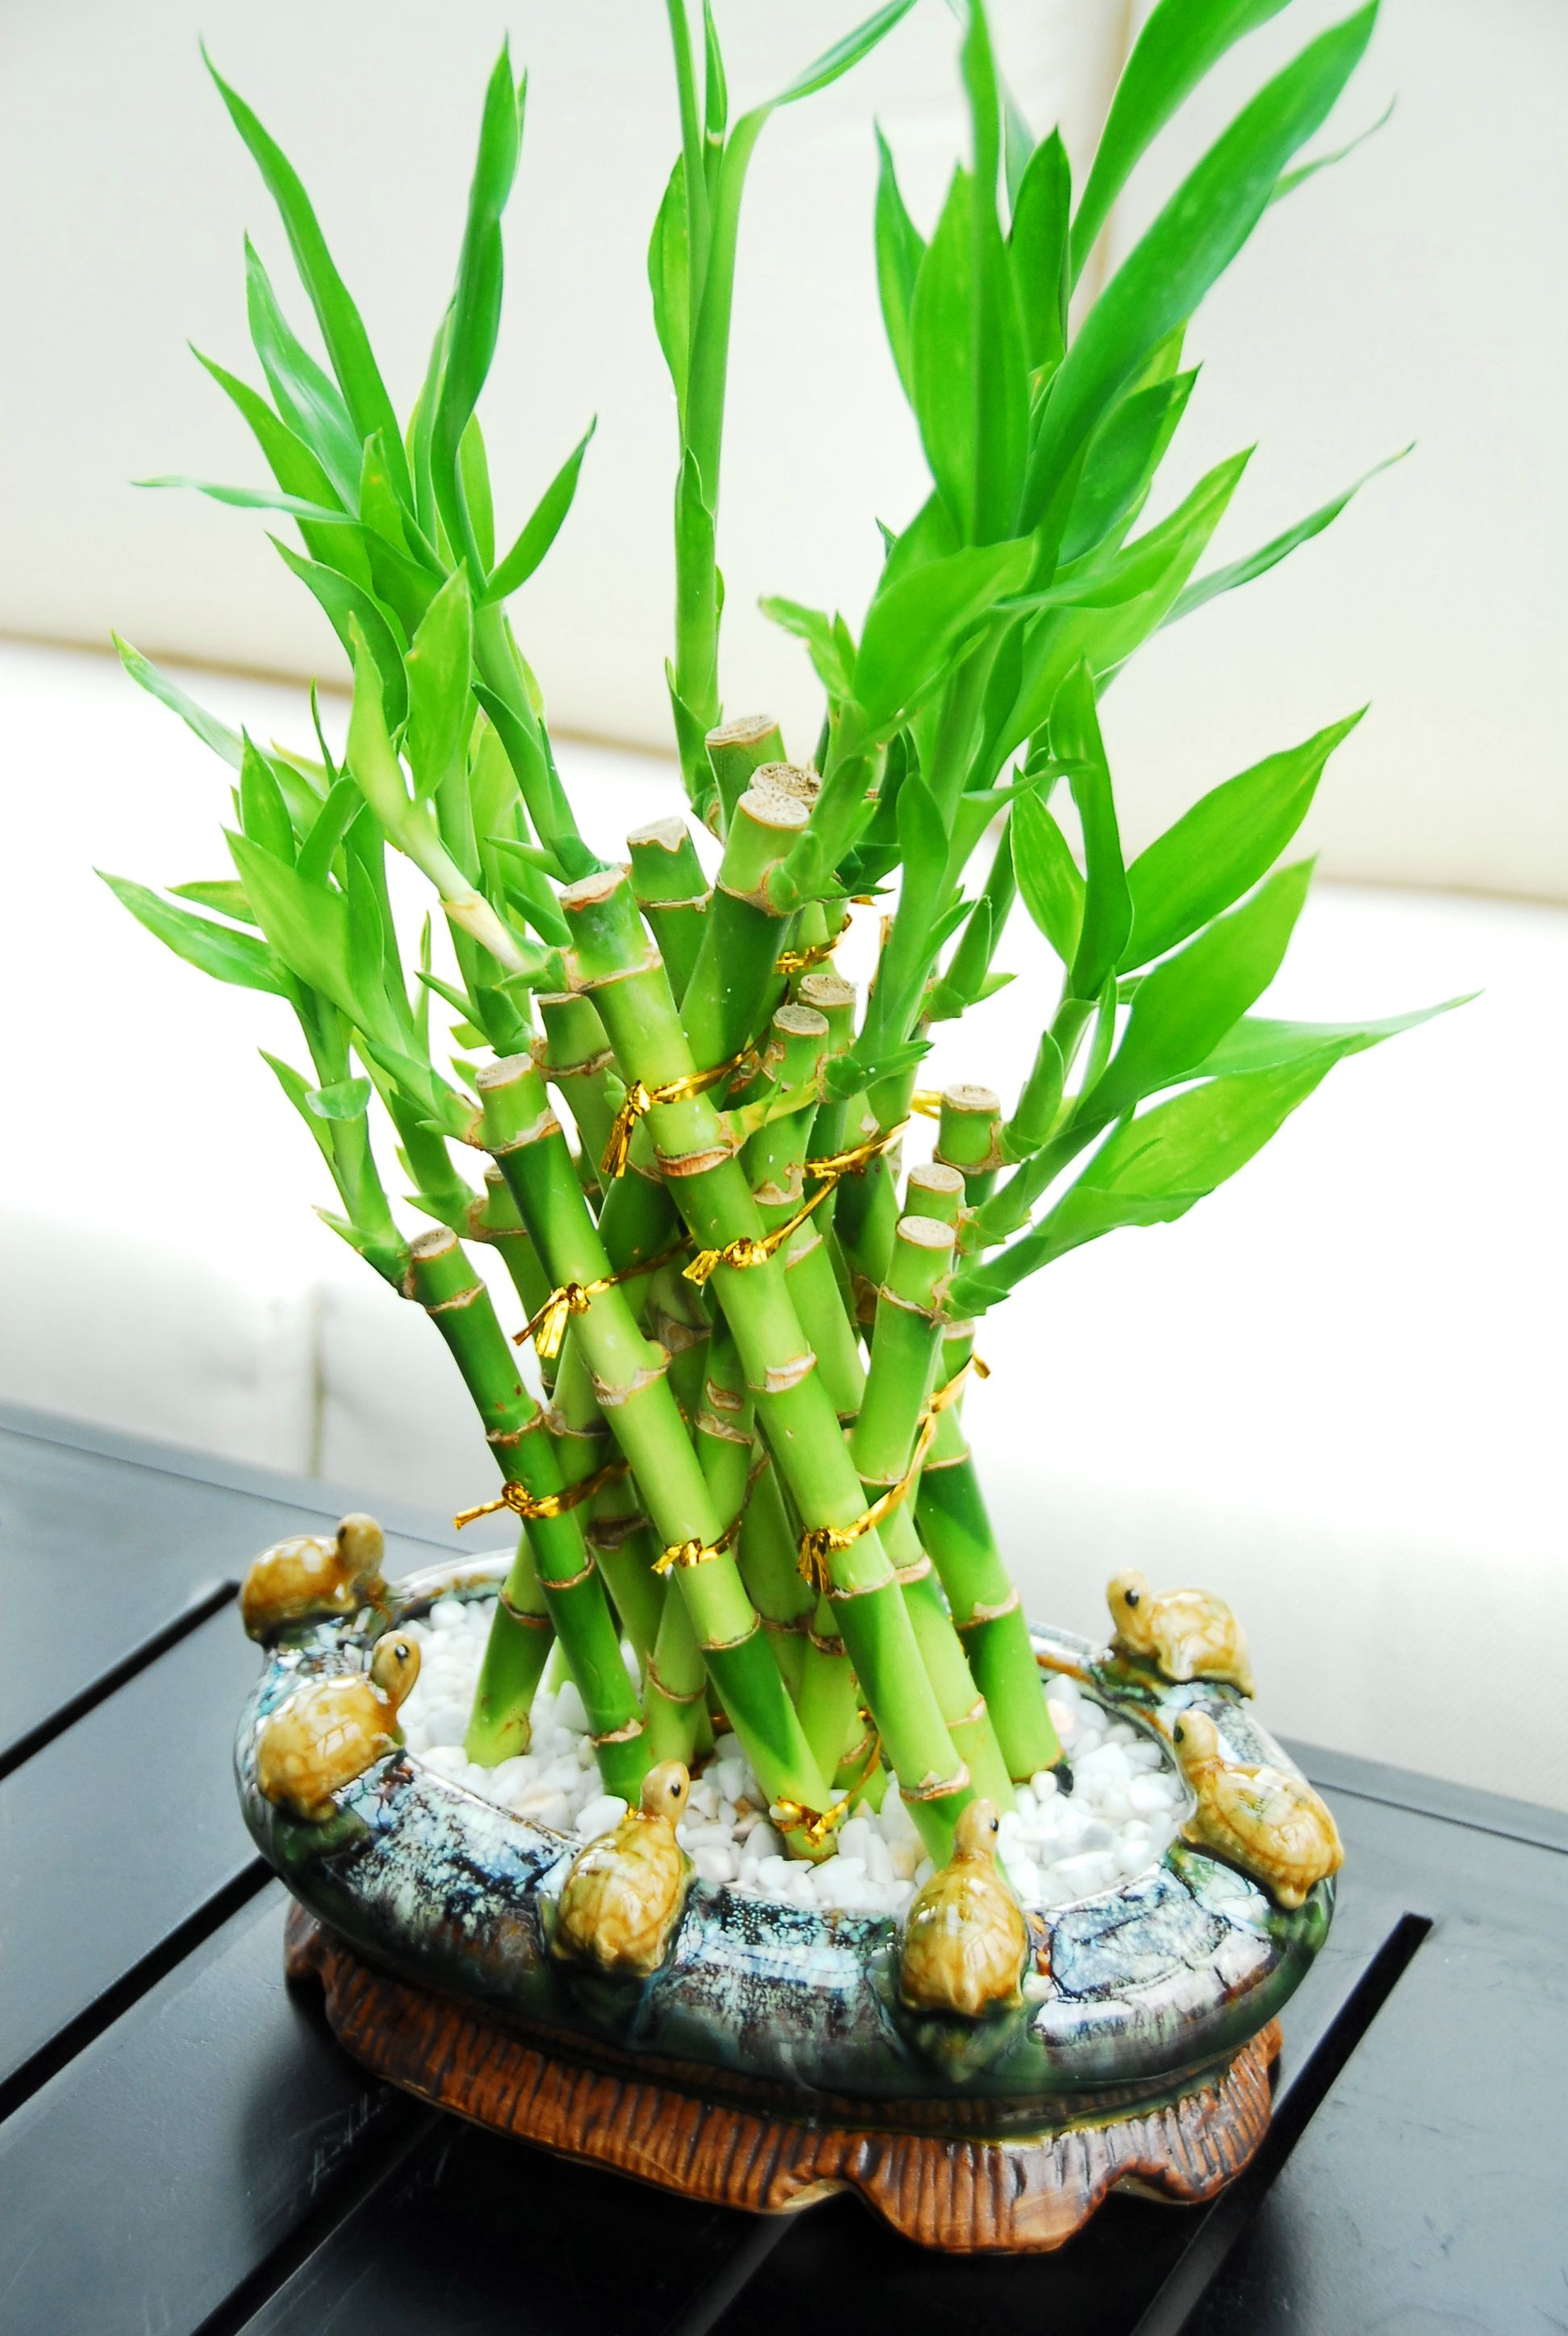 What do the colors of ribbon symbolize on lucky bamboo ehow - Pyramid Lucky Bamboo 39 99 This Beautiful Pyramid Lucky Bamboo Arrangement Is Featured In A